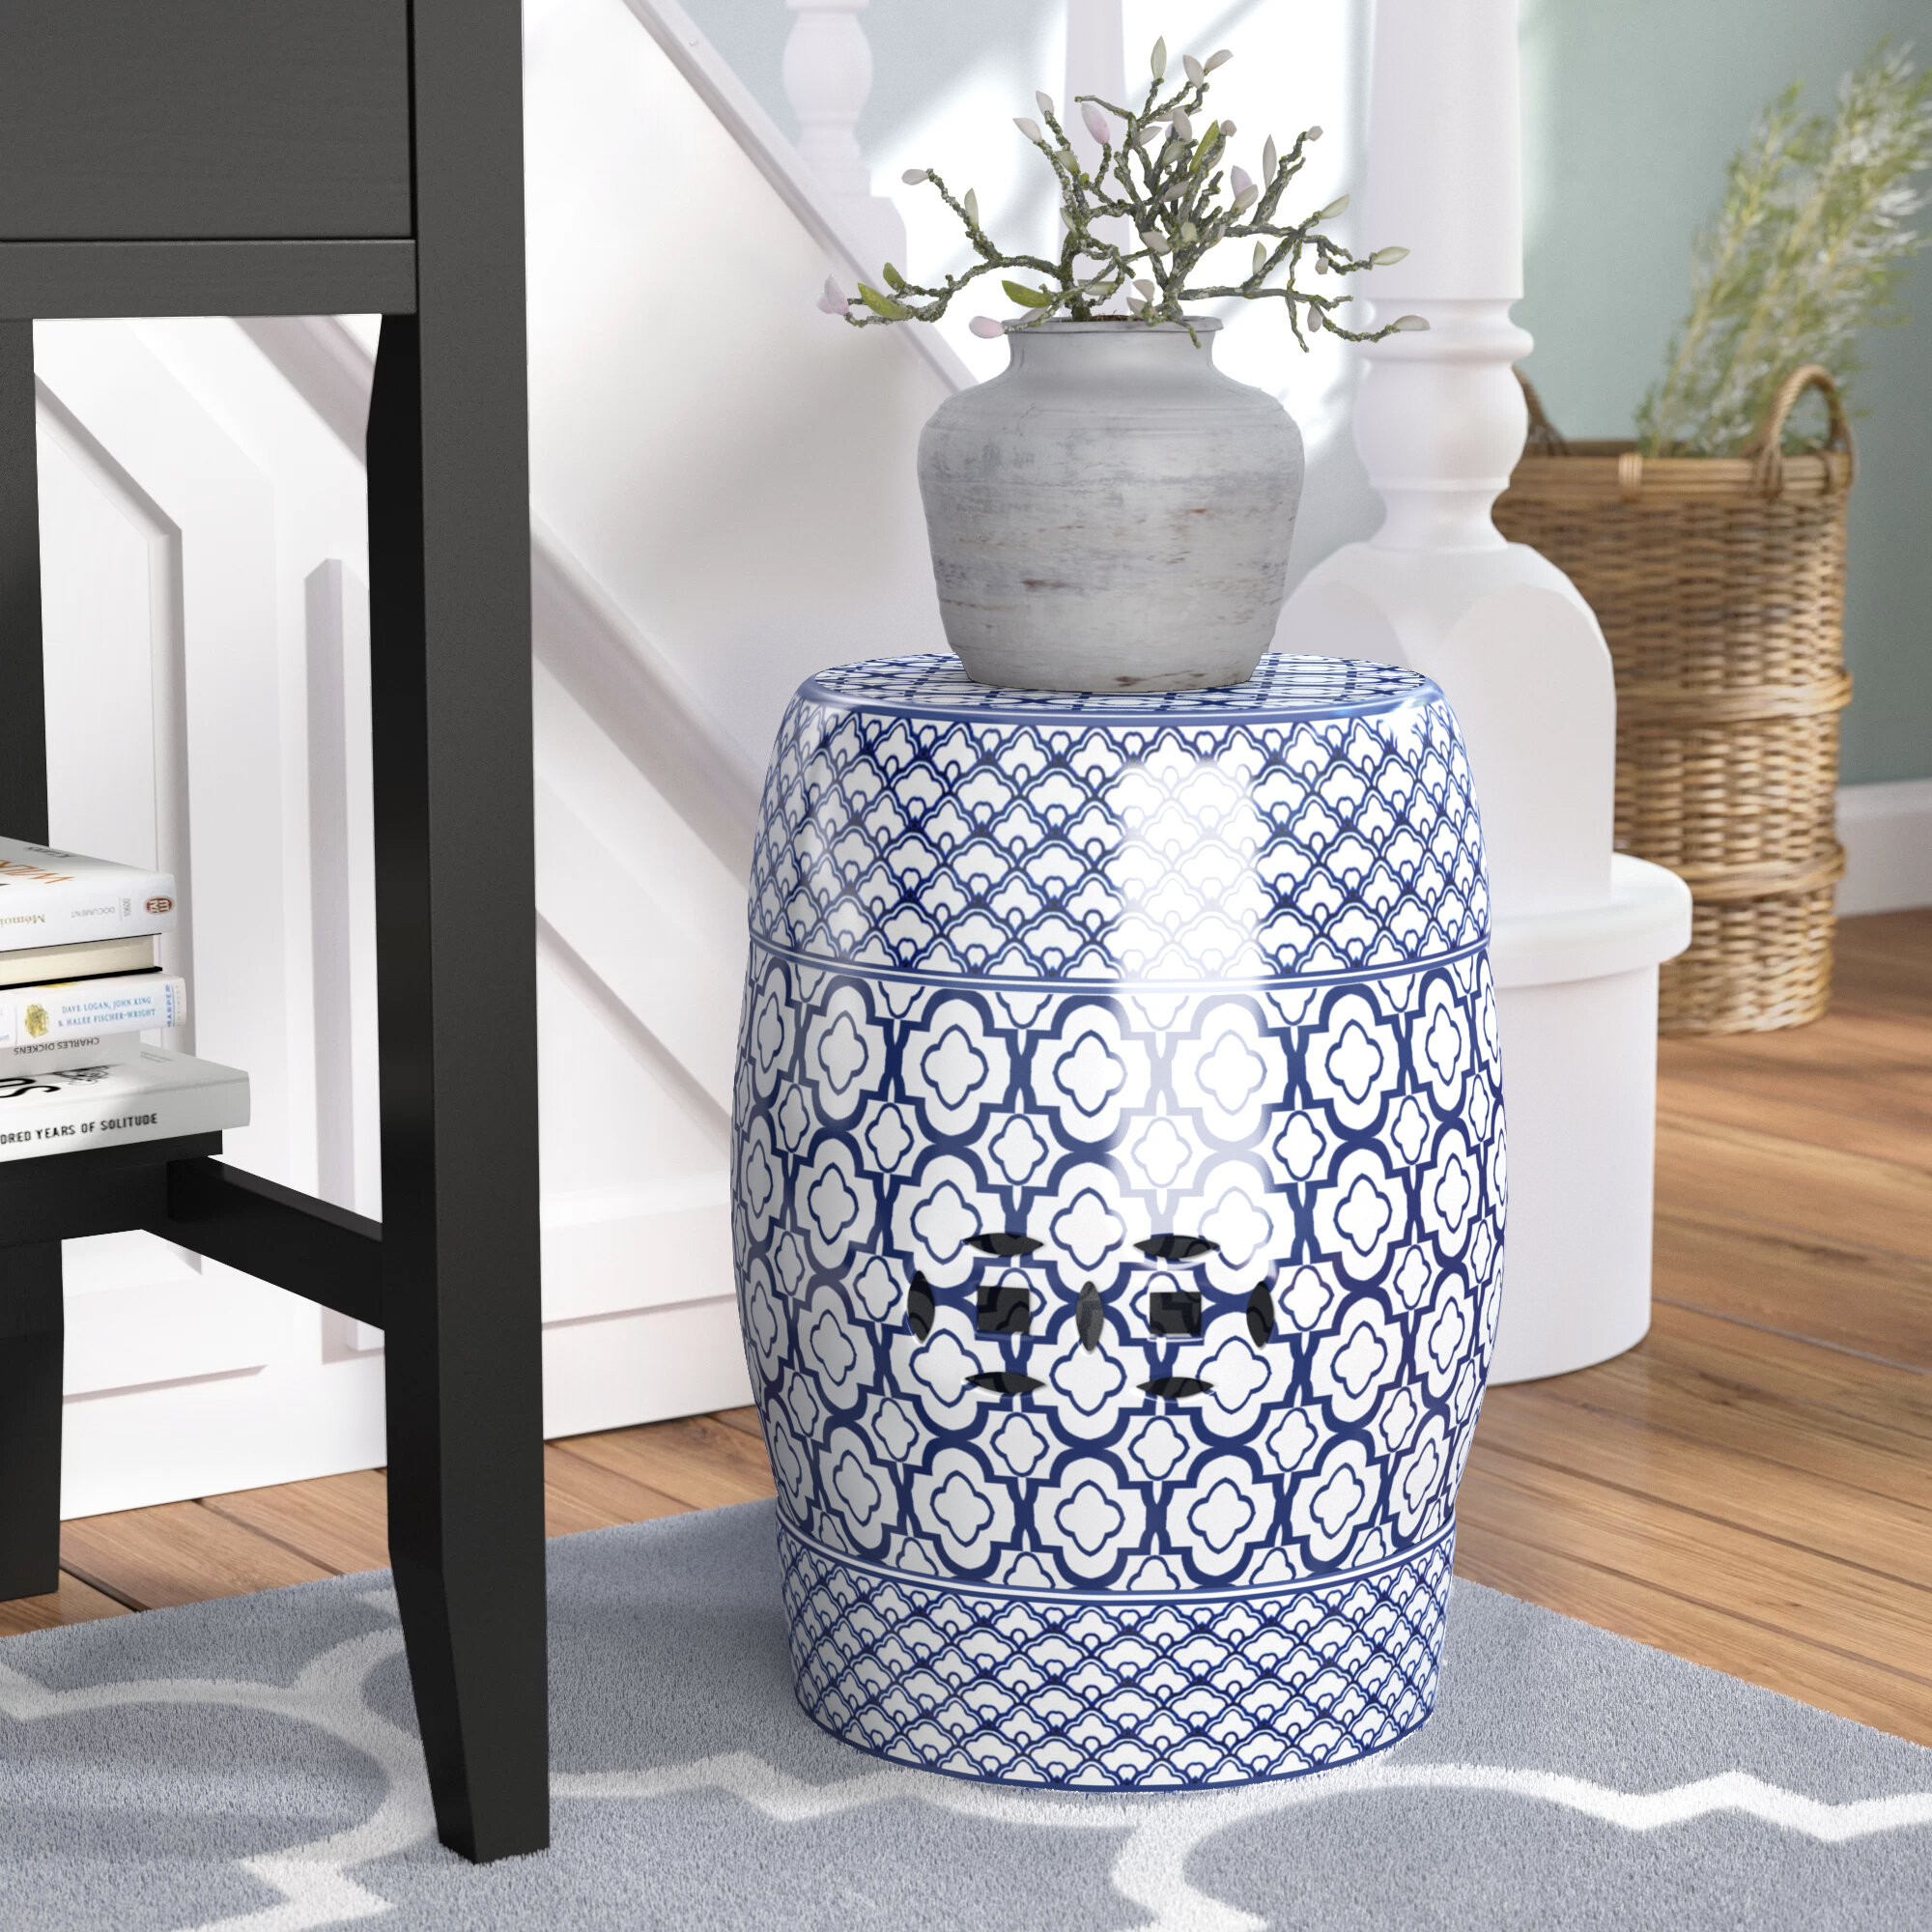 Ceramic Garden Accent Stools You'Ll Love In 2020 | Wayfair Throughout Williar Cherry Blossom Ceramic Garden Stools (View 5 of 25)